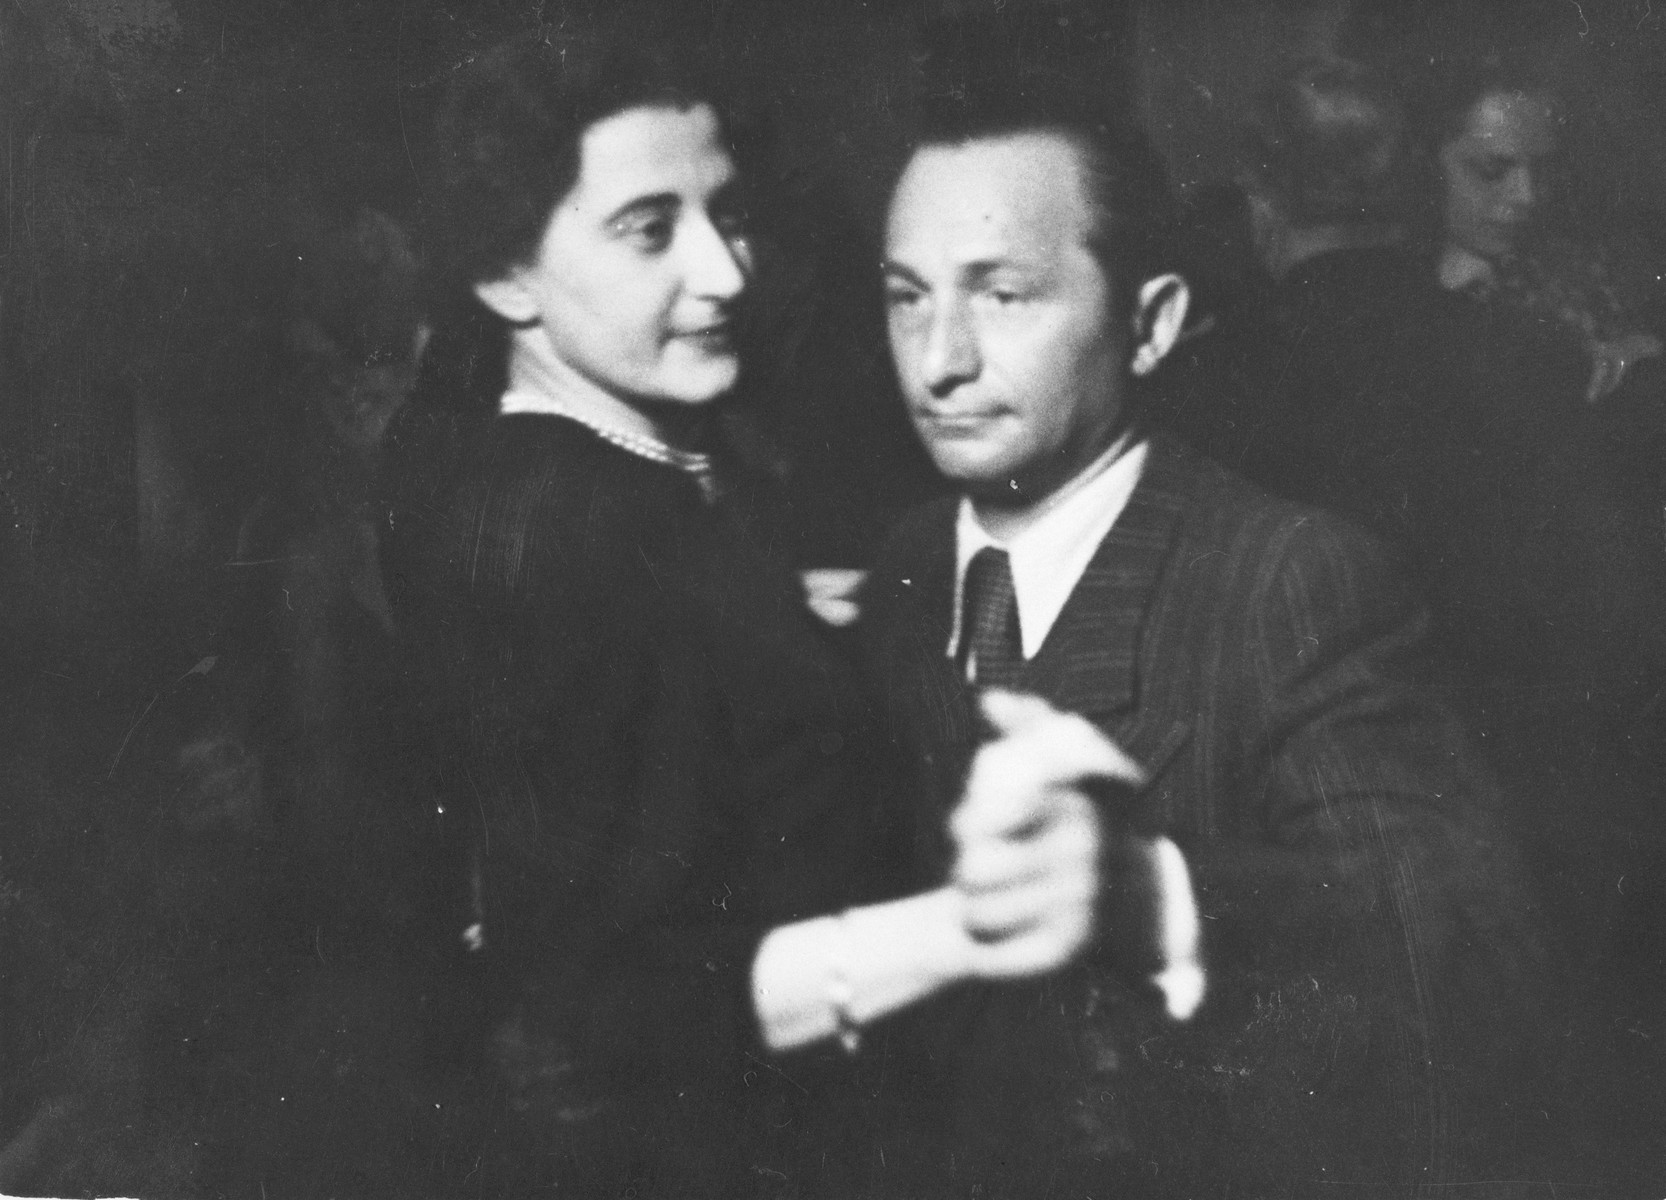 Close-up portrait of Lusia and Henryk Eichenholz dancing together.